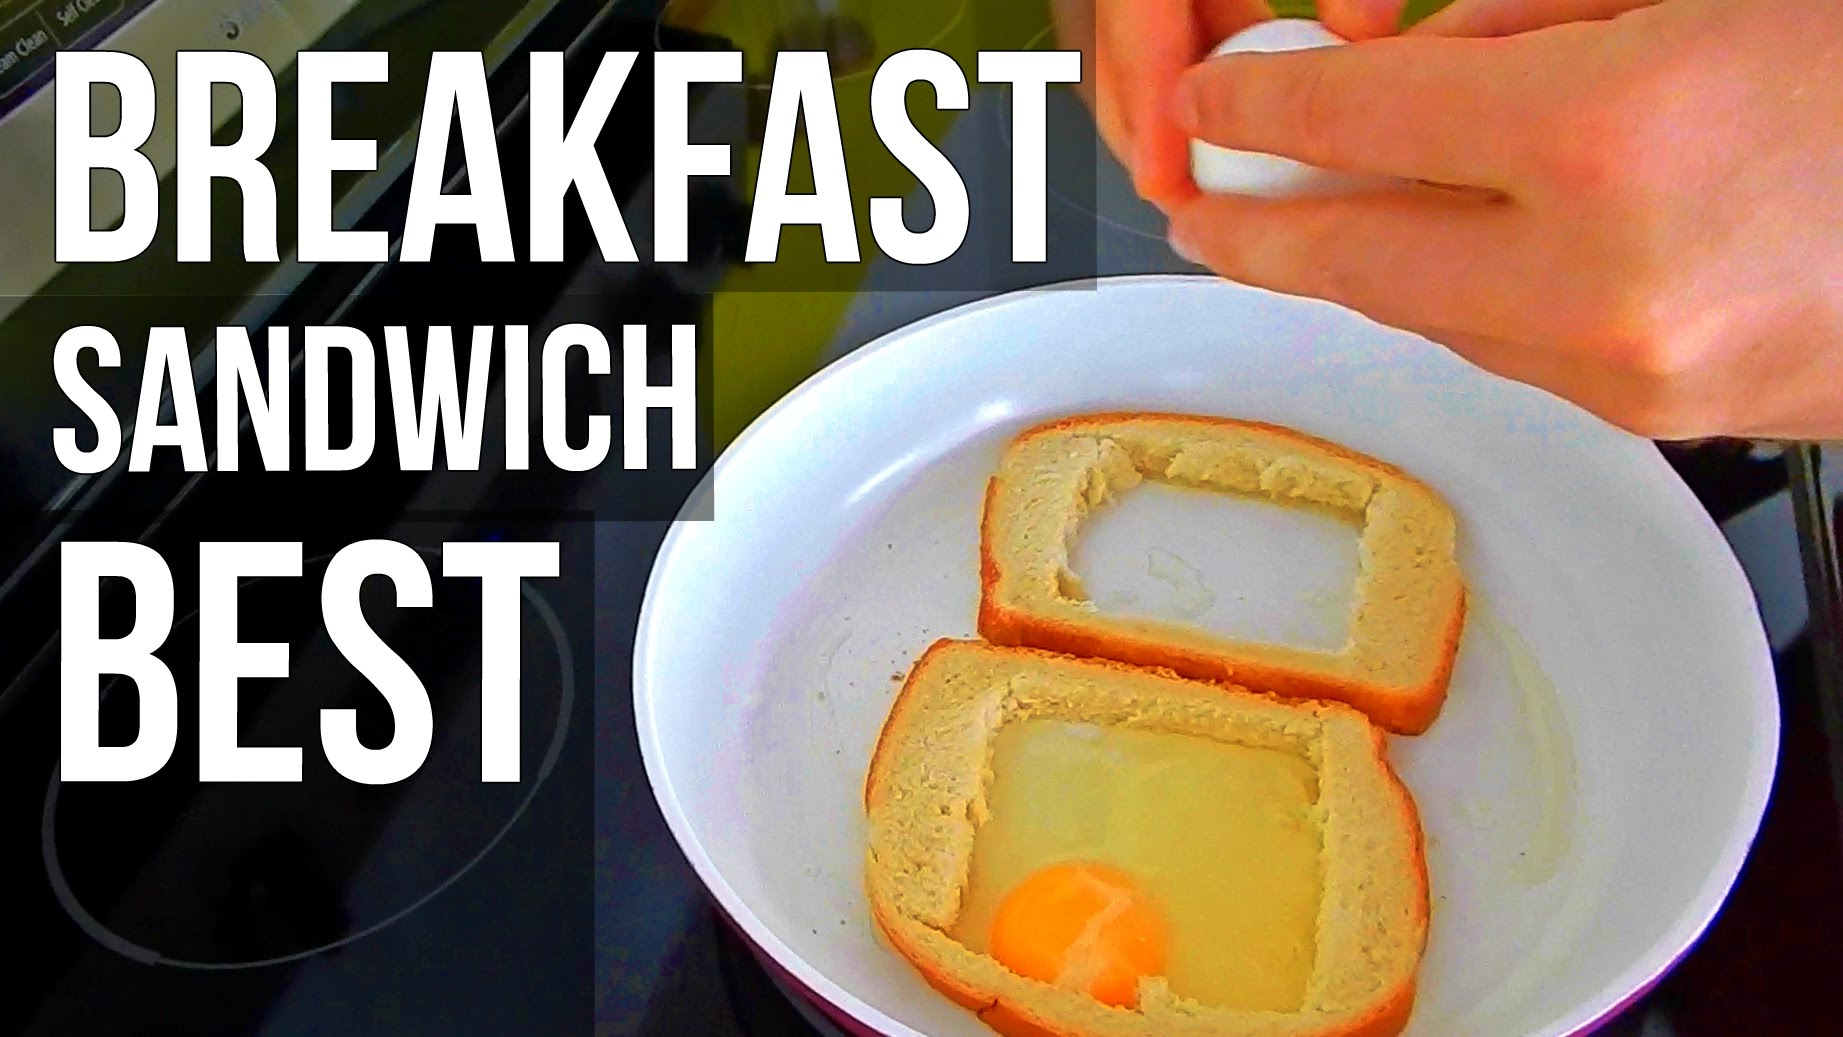 How to make a breakfast sandwich